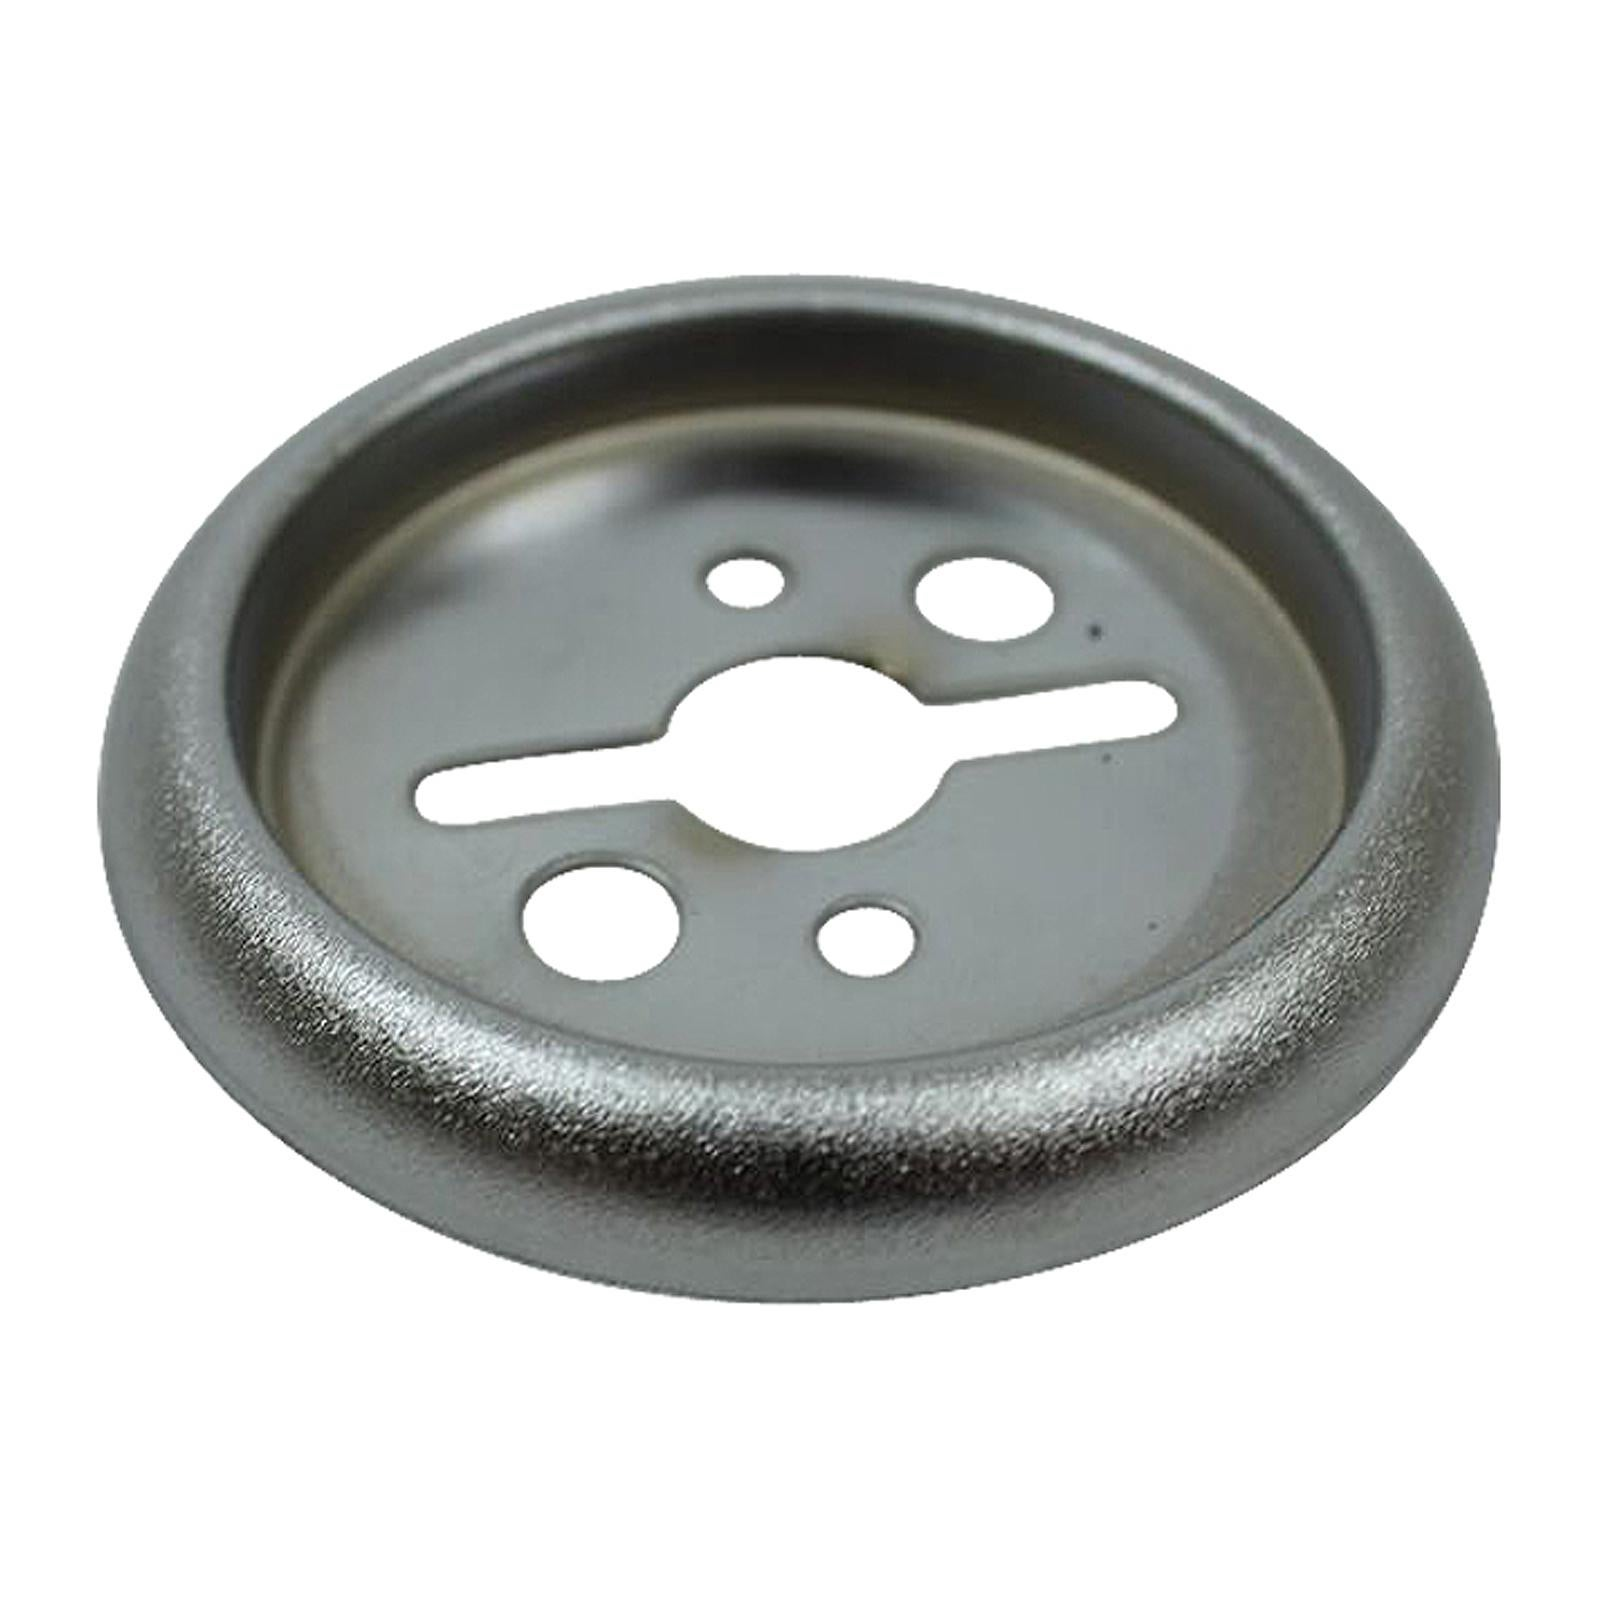 478024 New BeefEater Bezel to suit BeefEater Barbeque